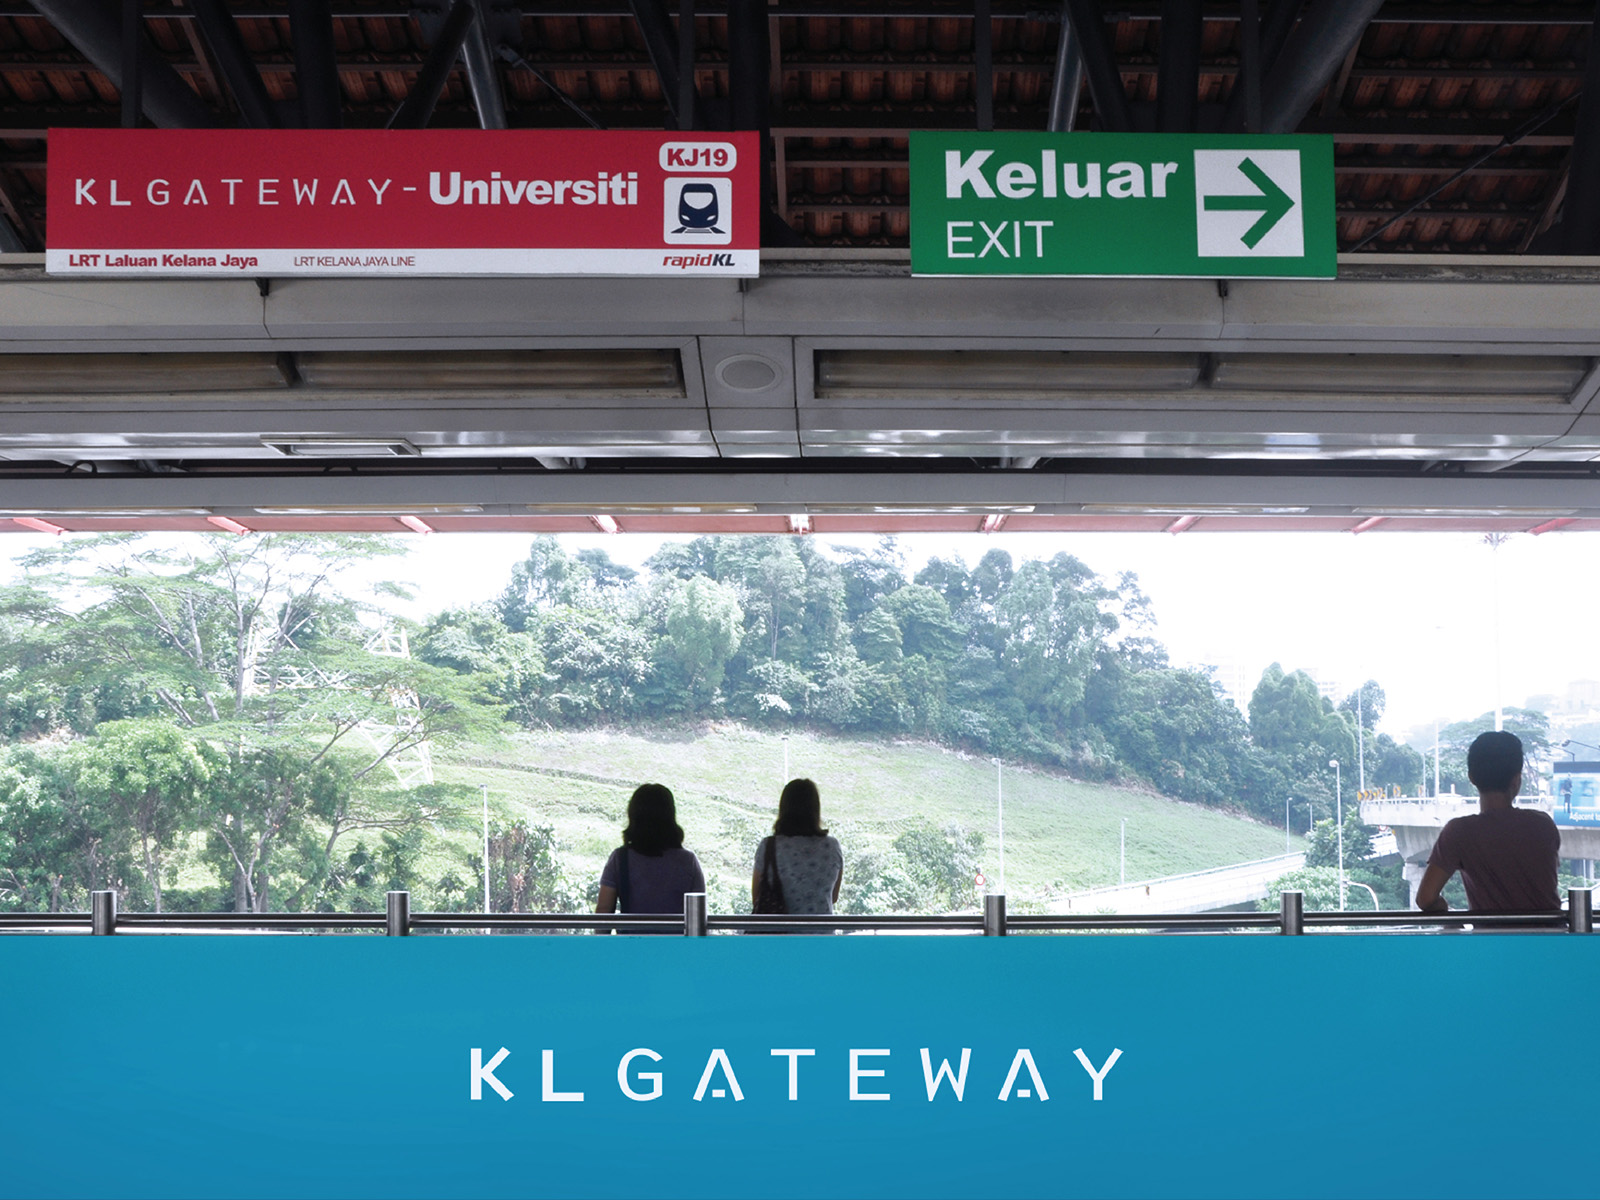 KL Gateway by Suezcap train station brand advertisement takeover on the handrail panels by the waiting area